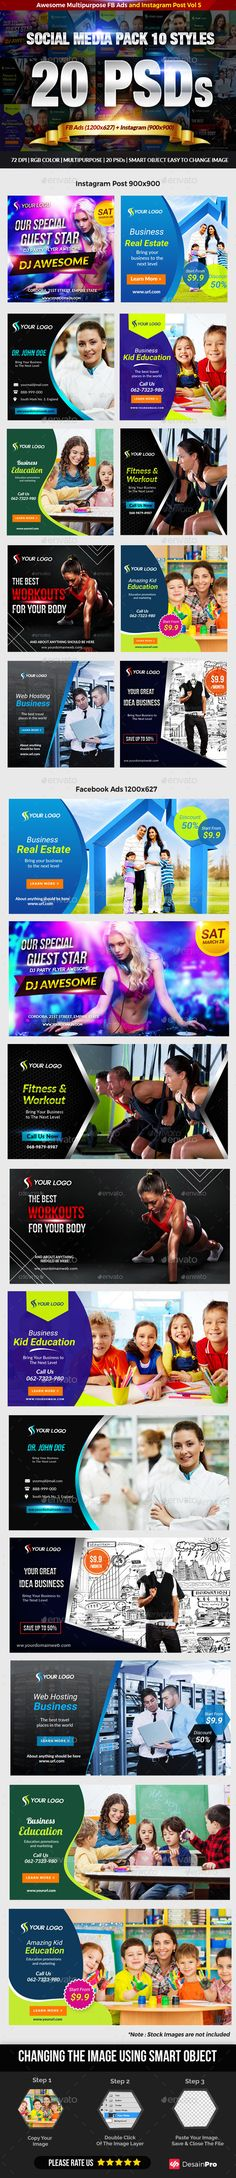 Facebook + Instagram Banners Pack Templates PSD #promotion #ads Download here: https://graphicriver.net/item/facebook-instagram-banners-pack-vol-5/17665828?ref=ksioks